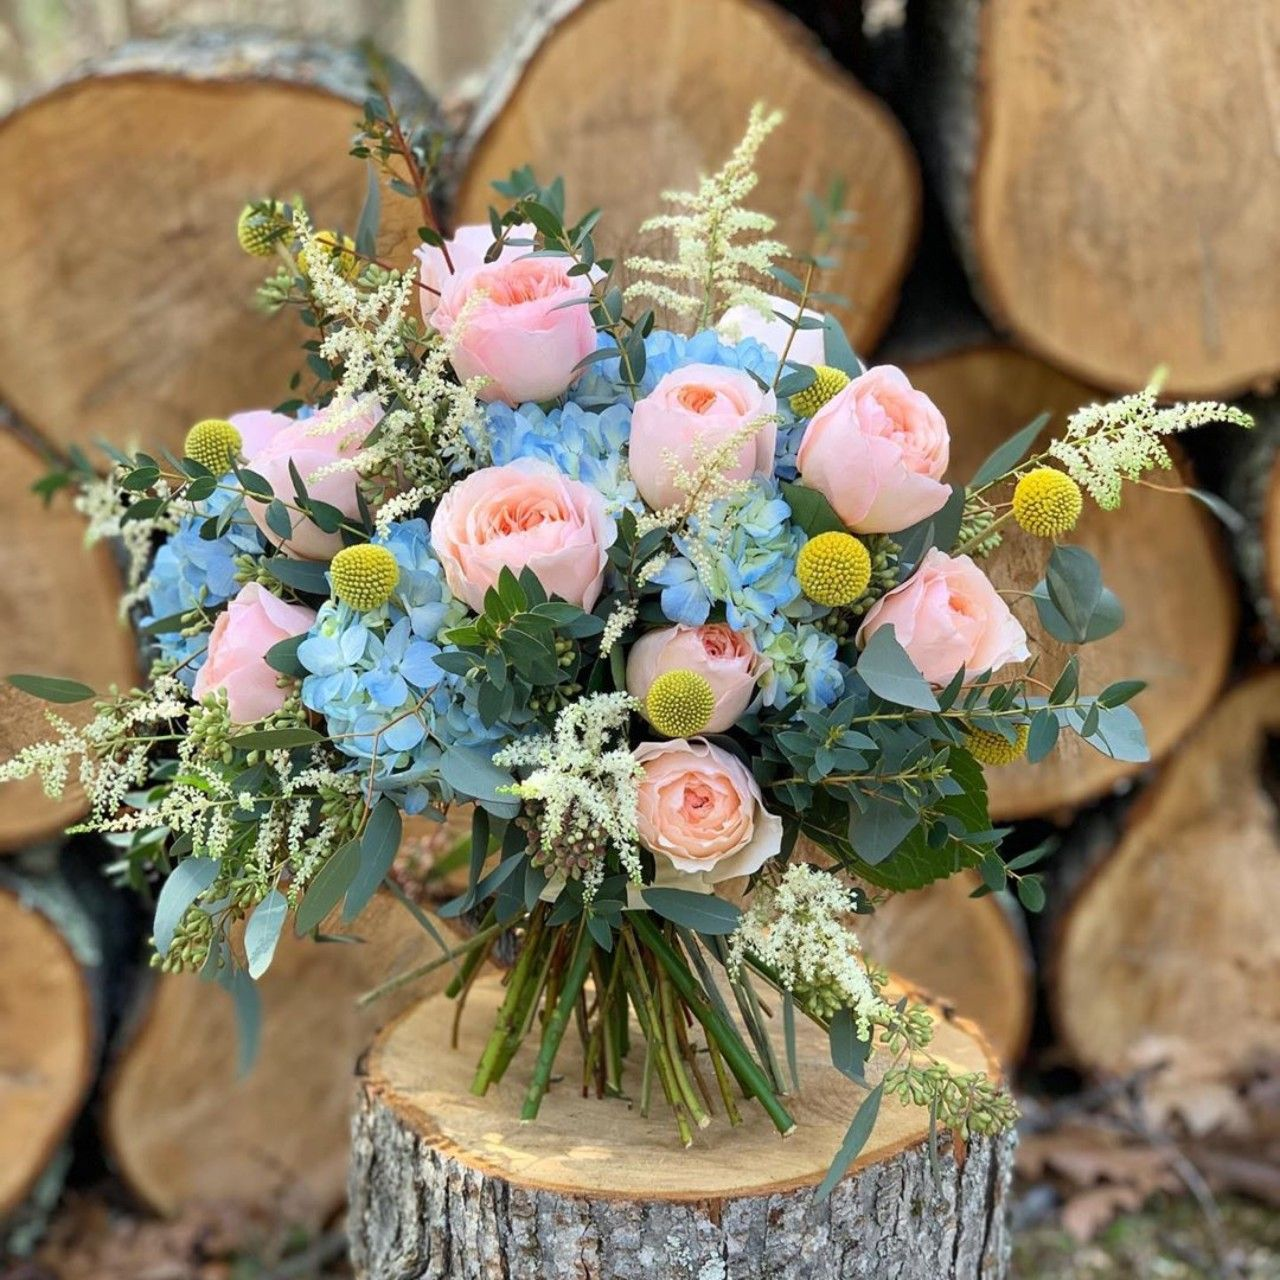 Pin On Everyday Floral Designs